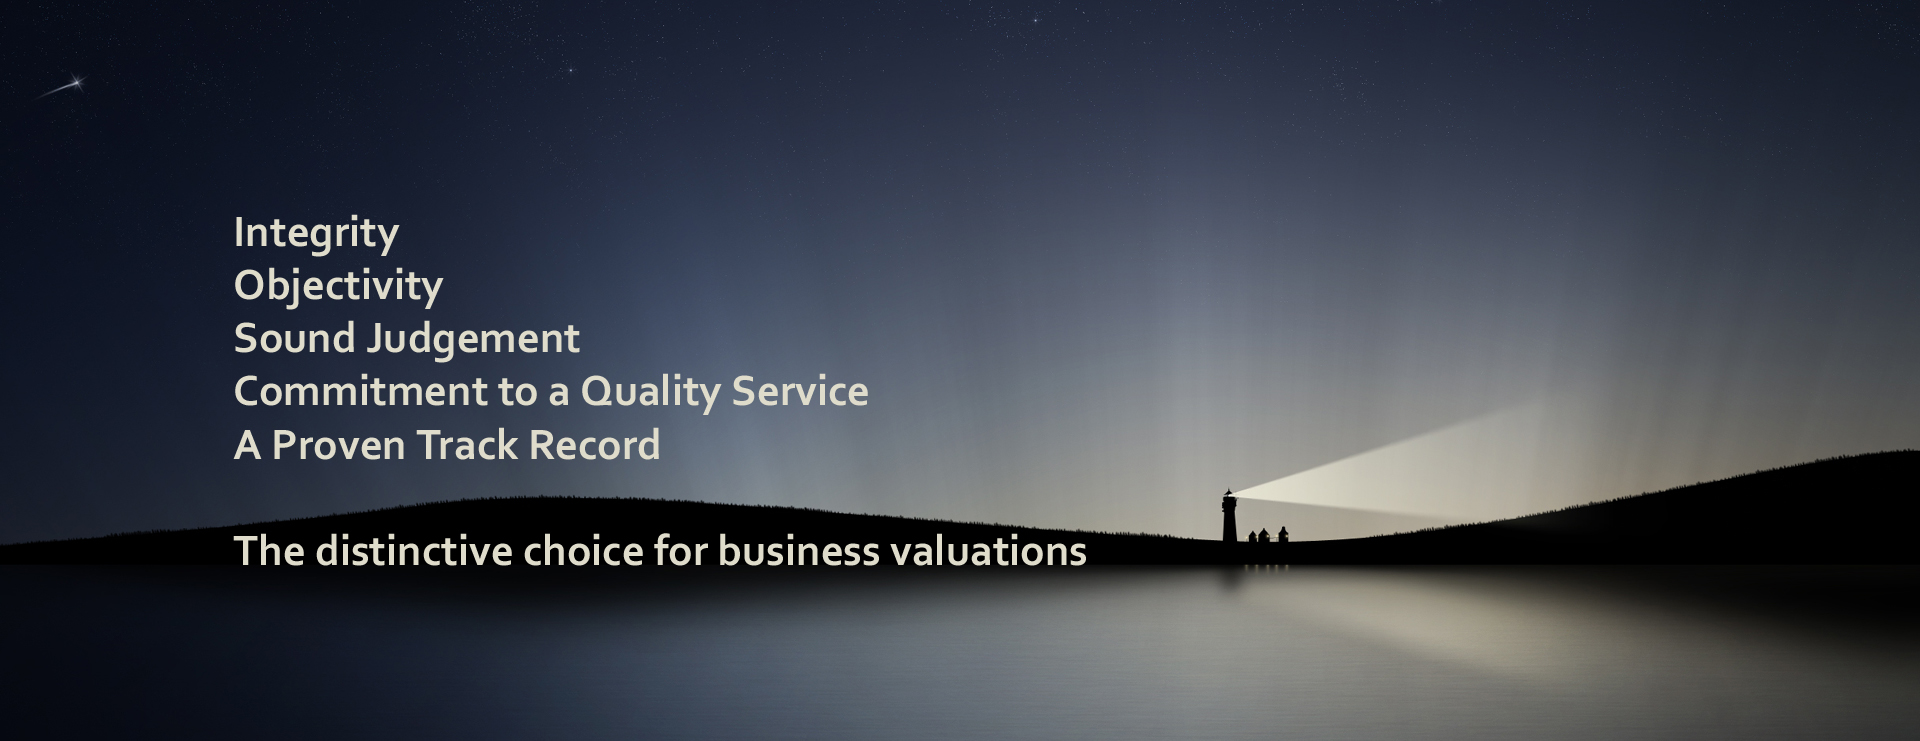 Integrity. Objectivity.  Sound Judgement. Commitment to a quality service. A proven track record. These are some of the reasons BVA Business Valuation Advisors are the distinctive choice for business valuations in Africa.